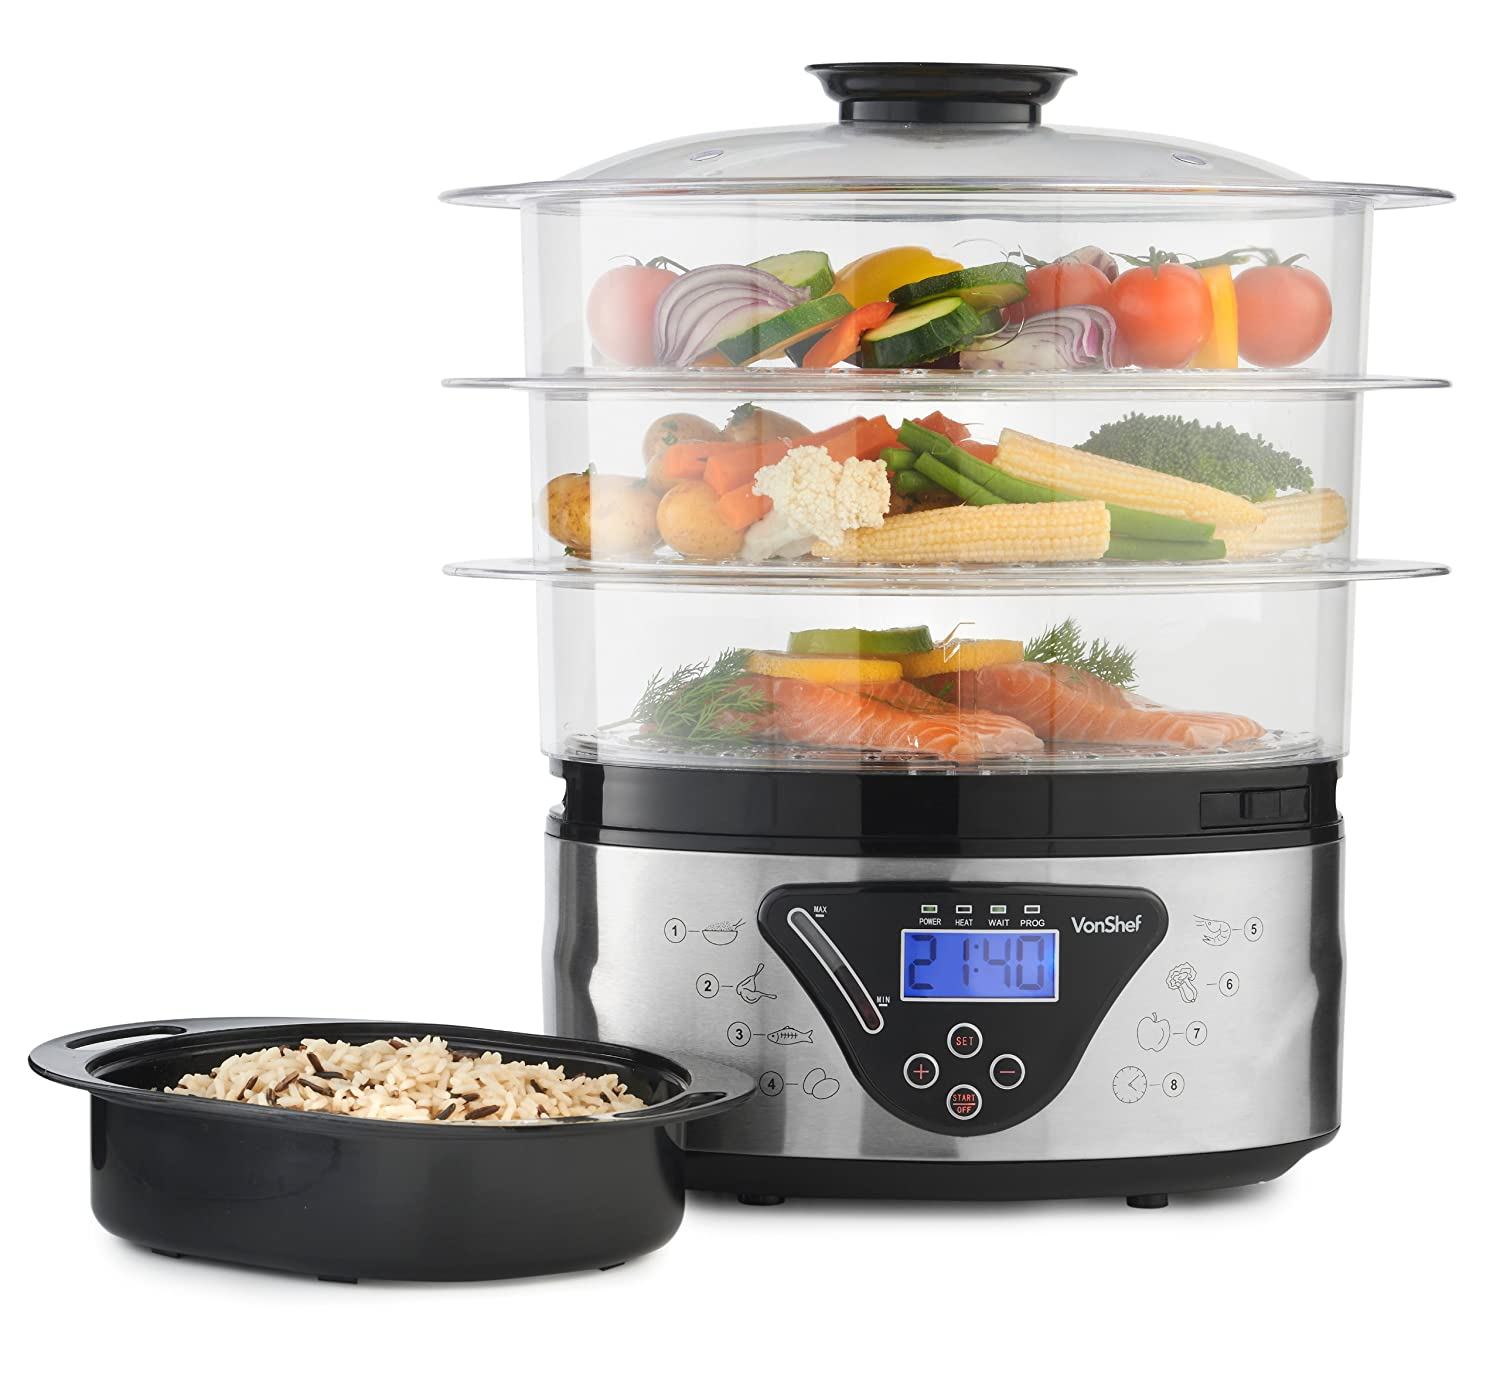 VonShef 8L Digital Stainless Steel 3 Tier Electric Food Steamer - Includes Rice  Steamer Bowl: Amazon.co.uk: Kitchen & Home